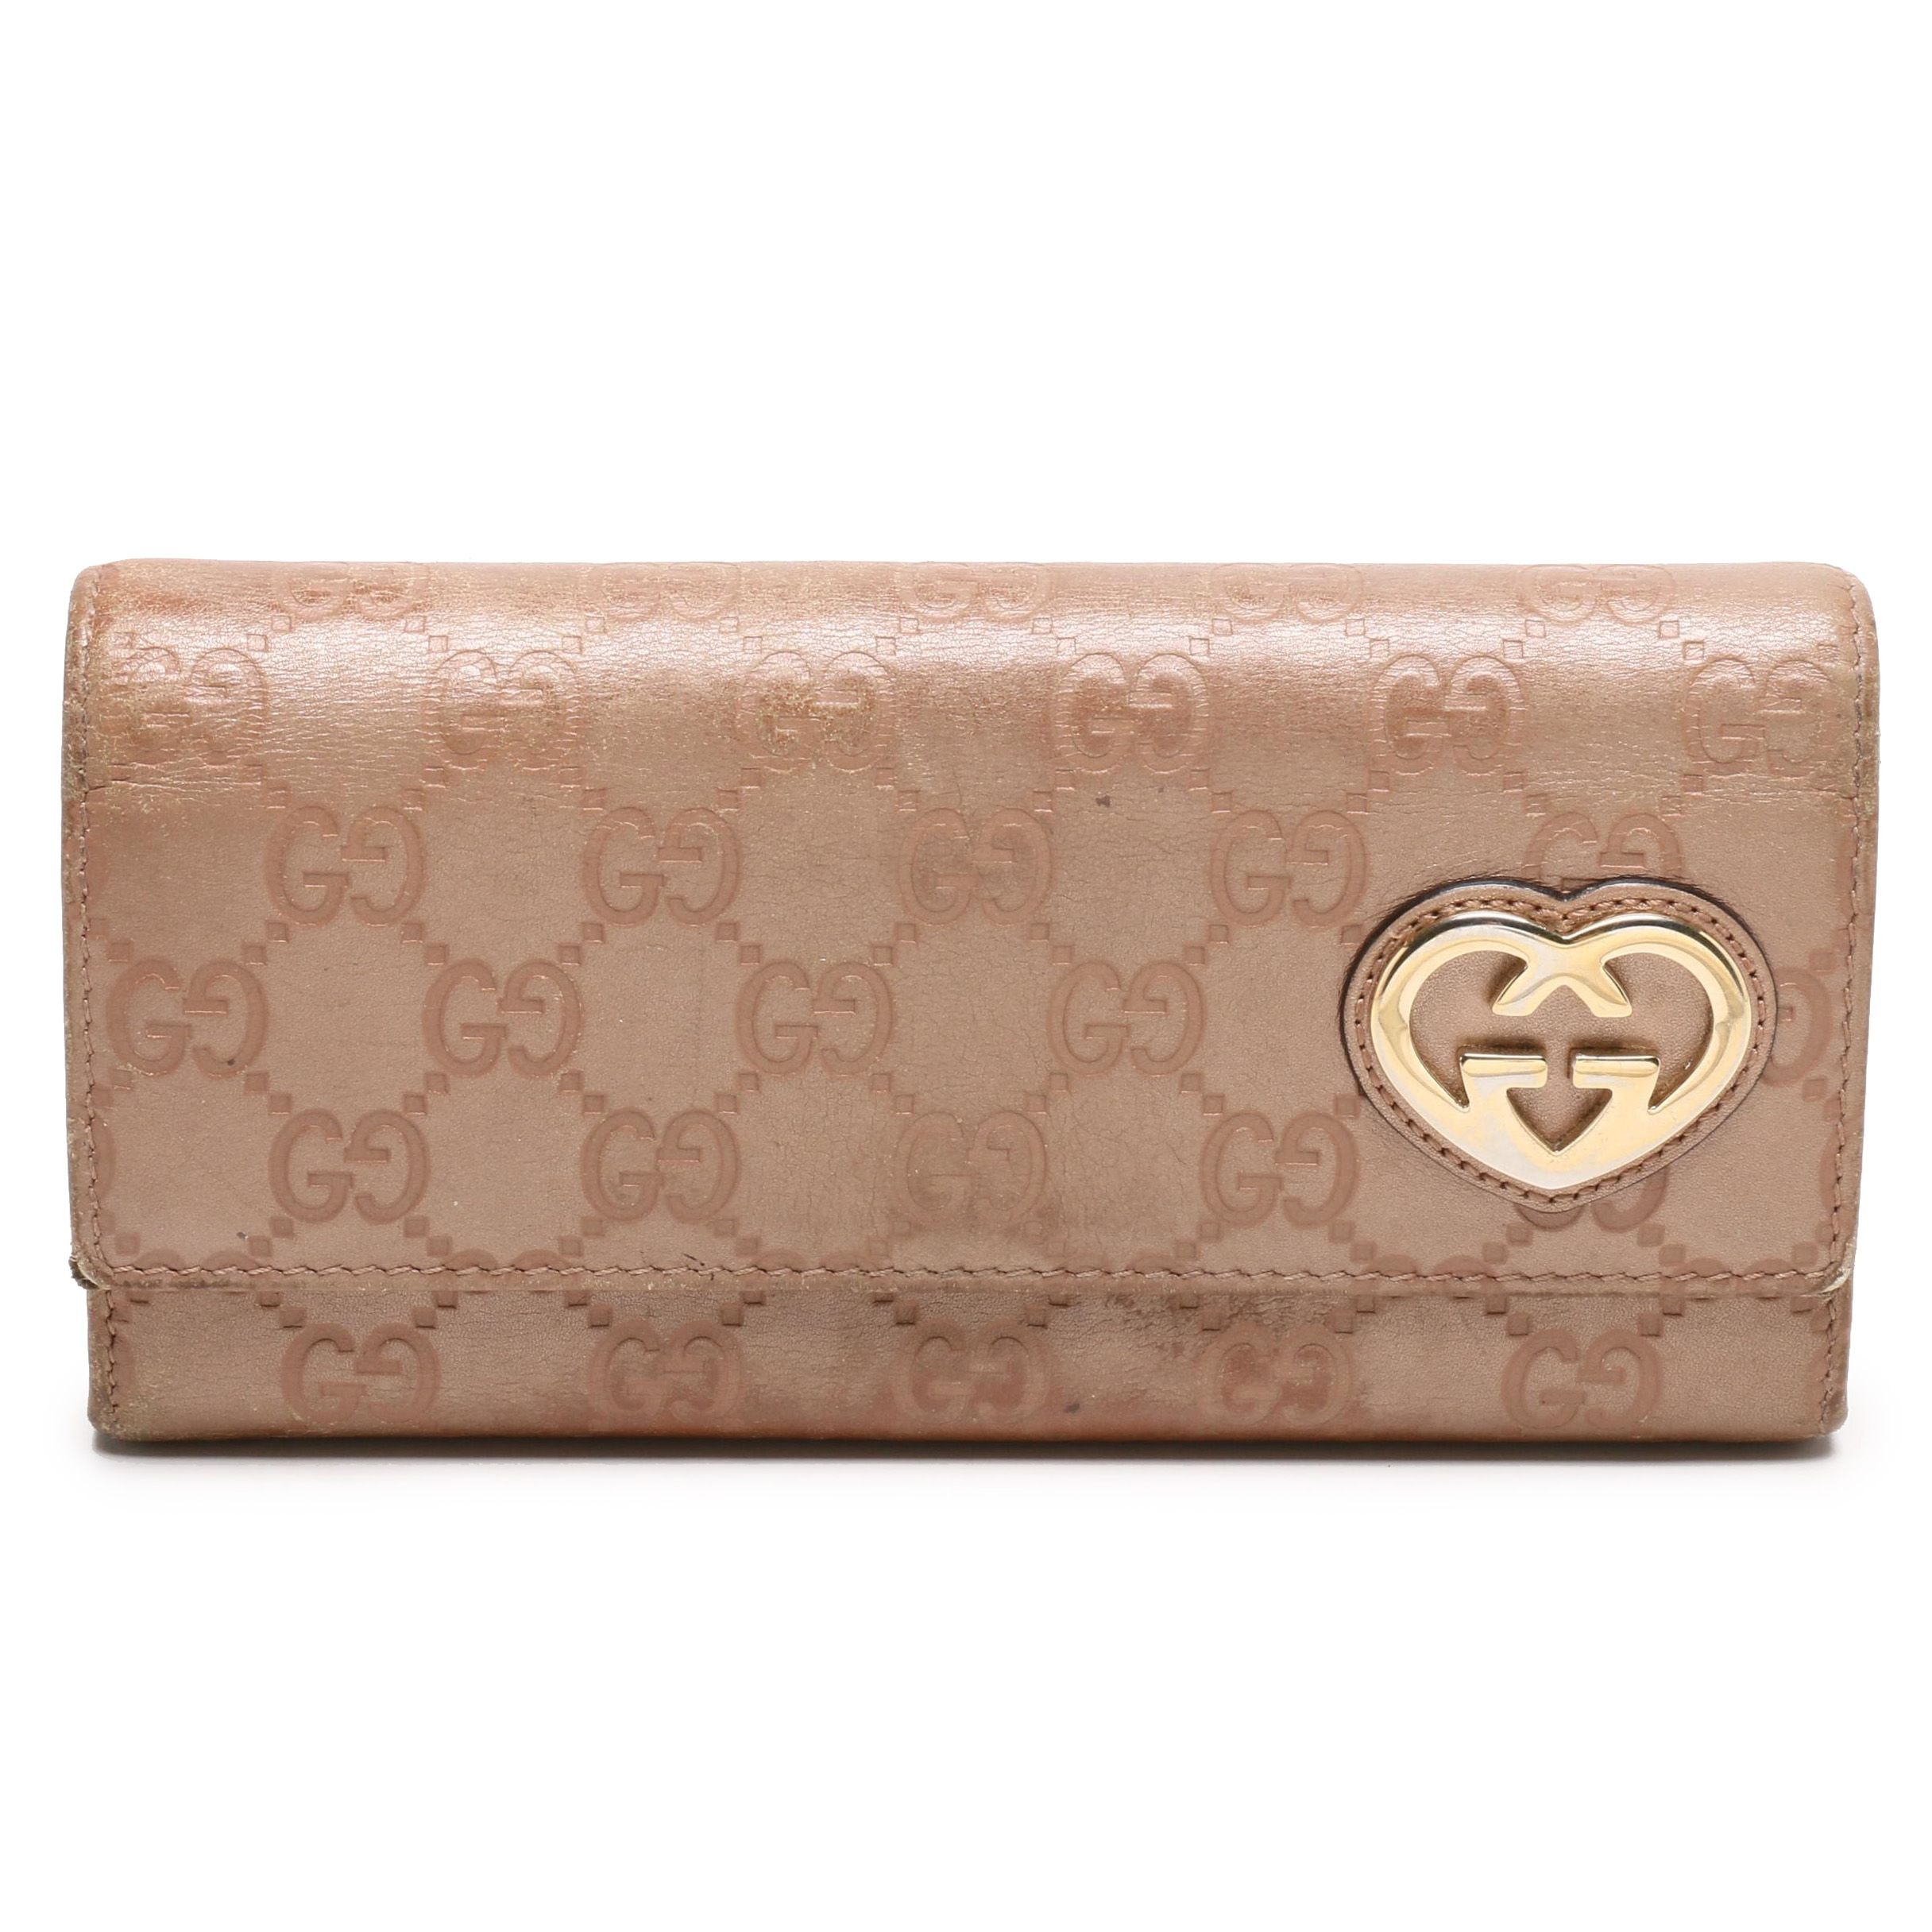 Gucci Dusty Pink Guccissima Leather Wallet